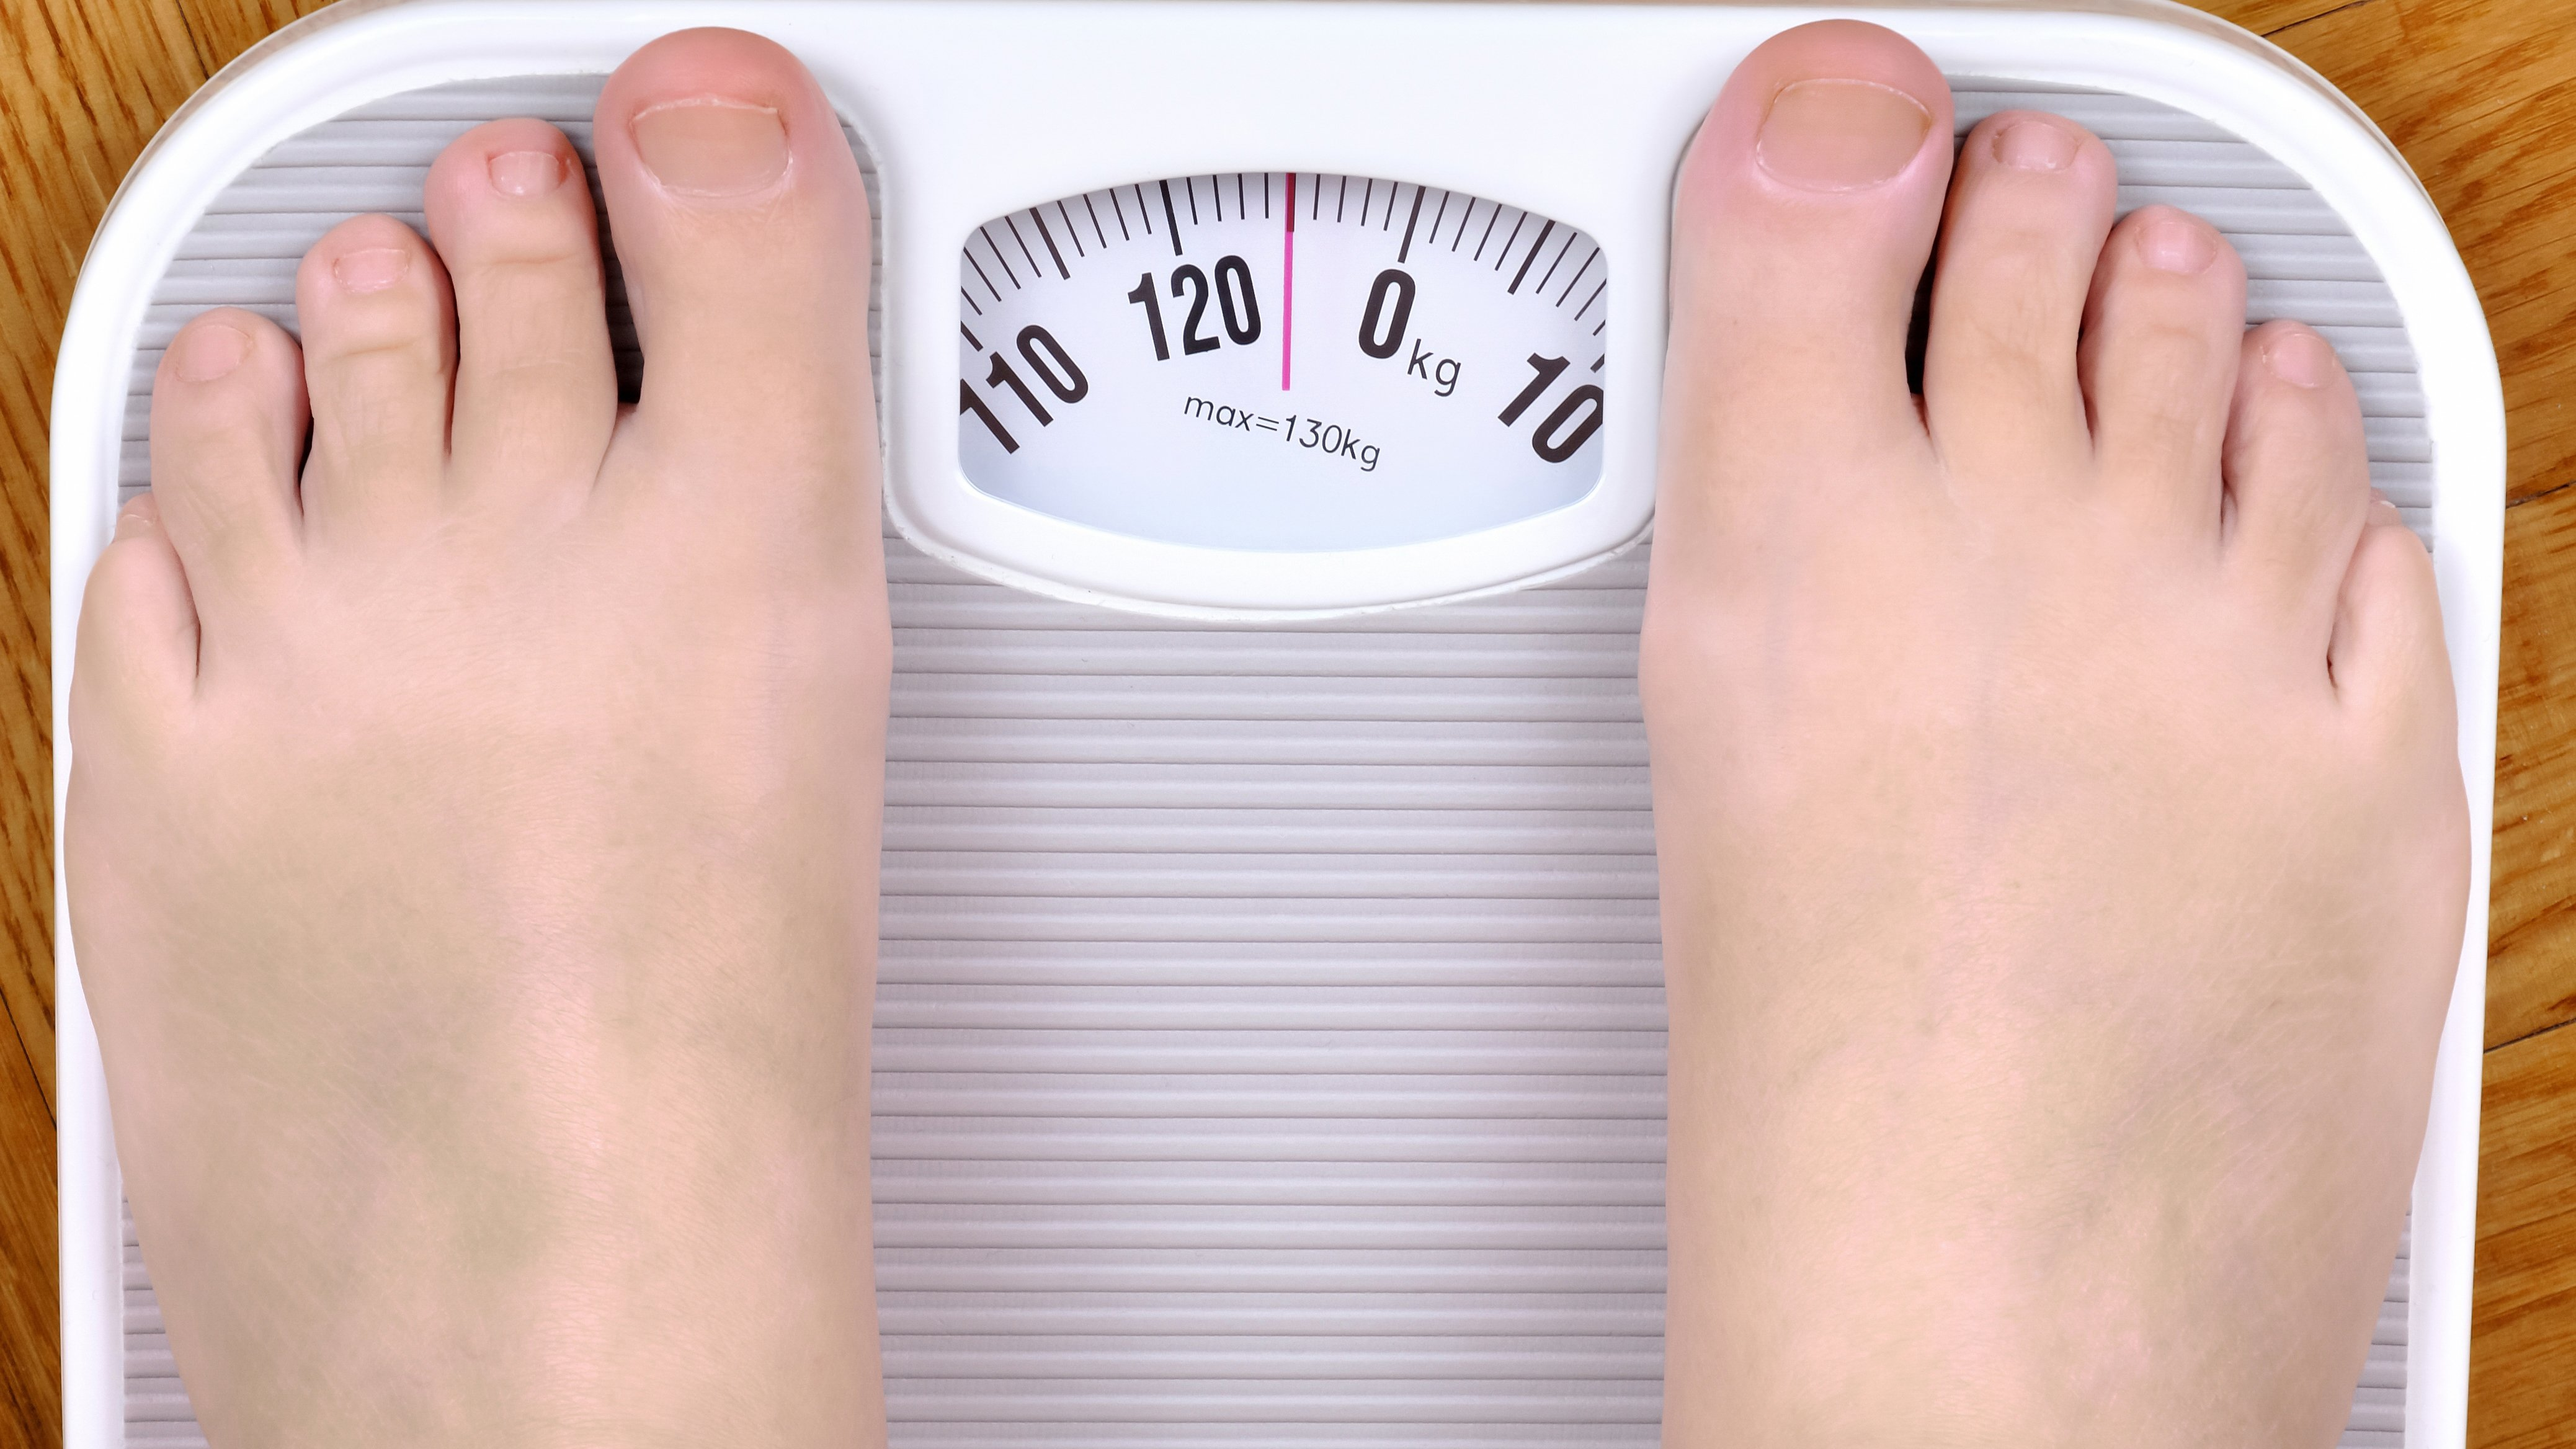 Severe obesity among 10 and 11-year-olds hits all-time high in UK